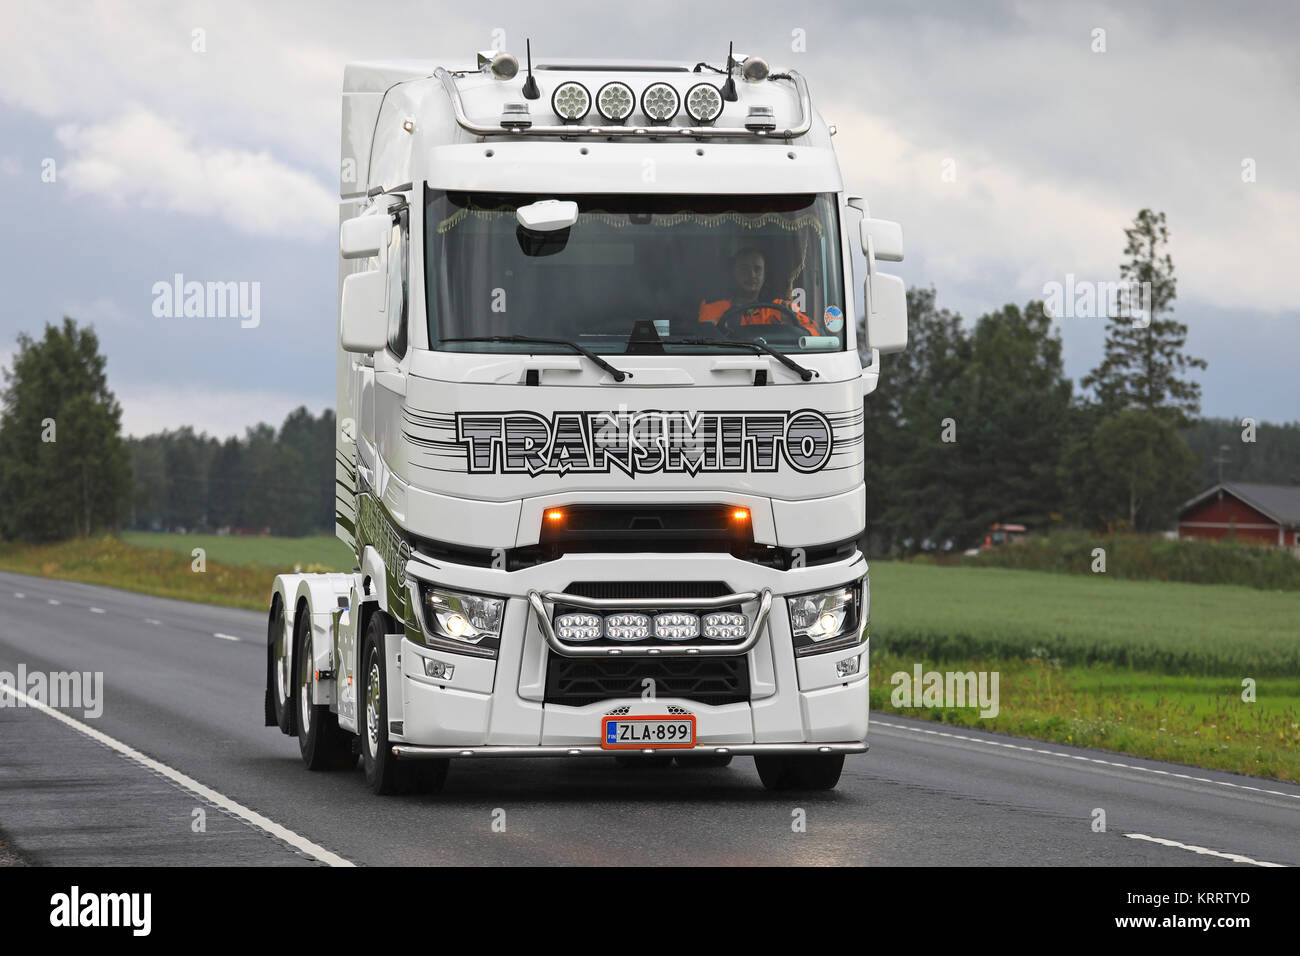 LUOPAJARVI, FINLAND - AUGUST 10, 2017: Black and white customized Renault Trucks T semi tractor with light accessories - Stock Image